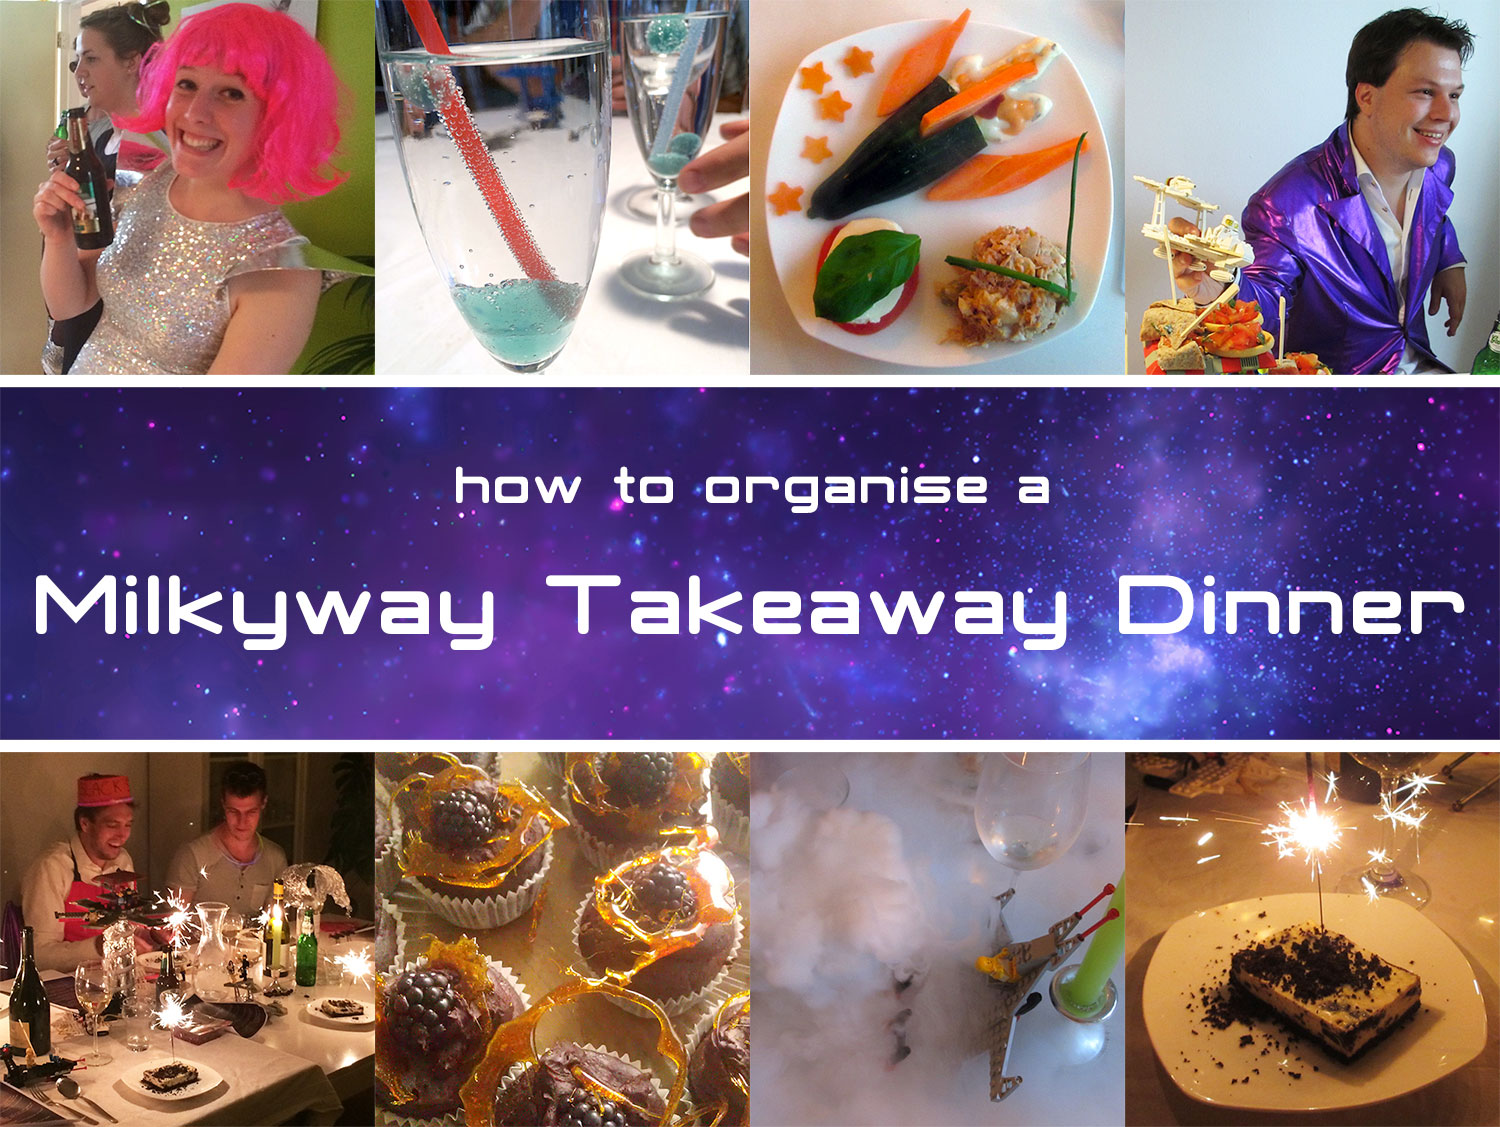 How to throw a Milky Way Takeaway dinner party - Magical Daydream